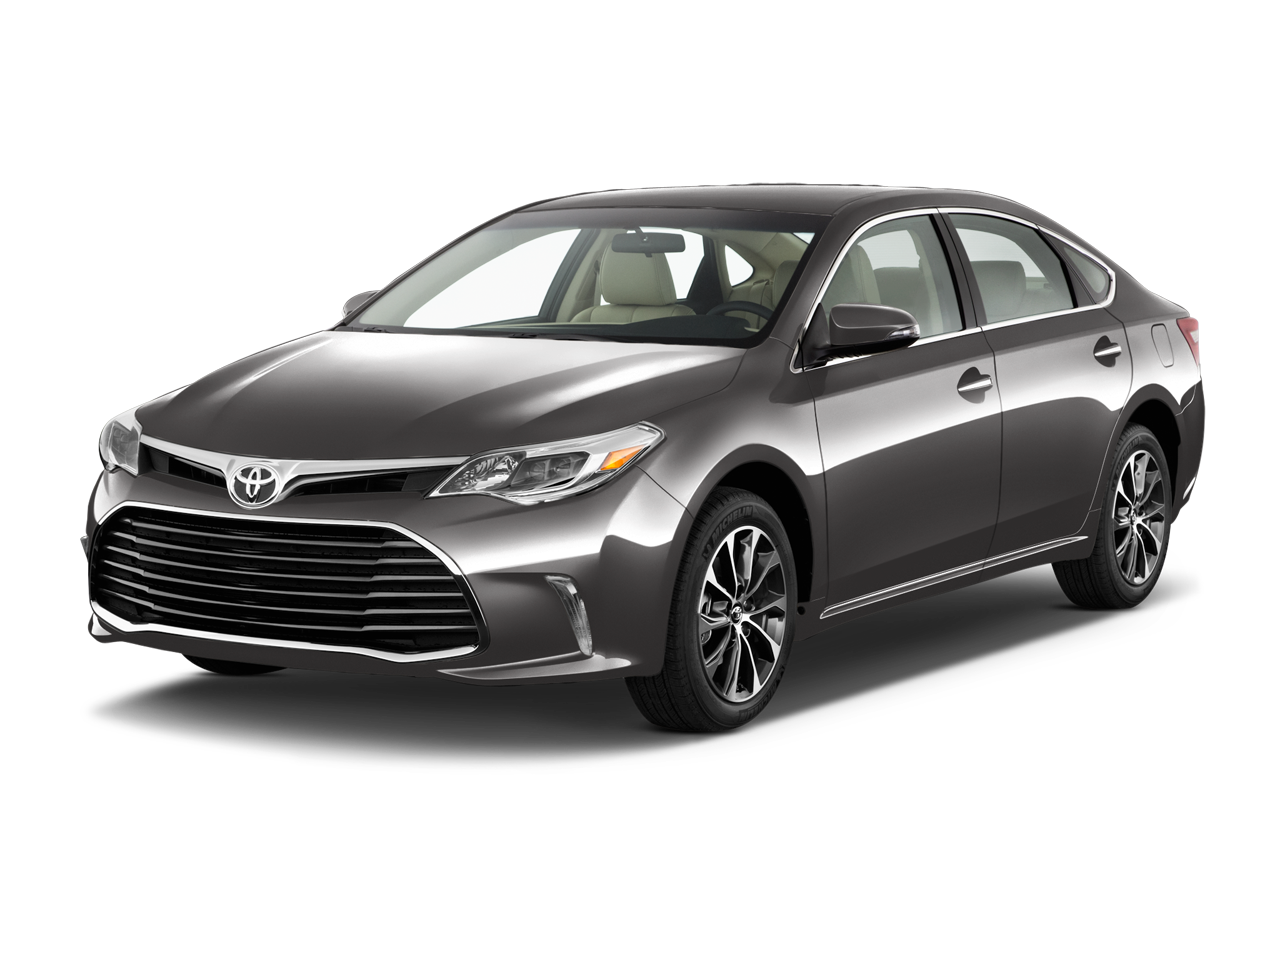 new 2017 toyota avalon xle premium near woburn ma. Black Bedroom Furniture Sets. Home Design Ideas